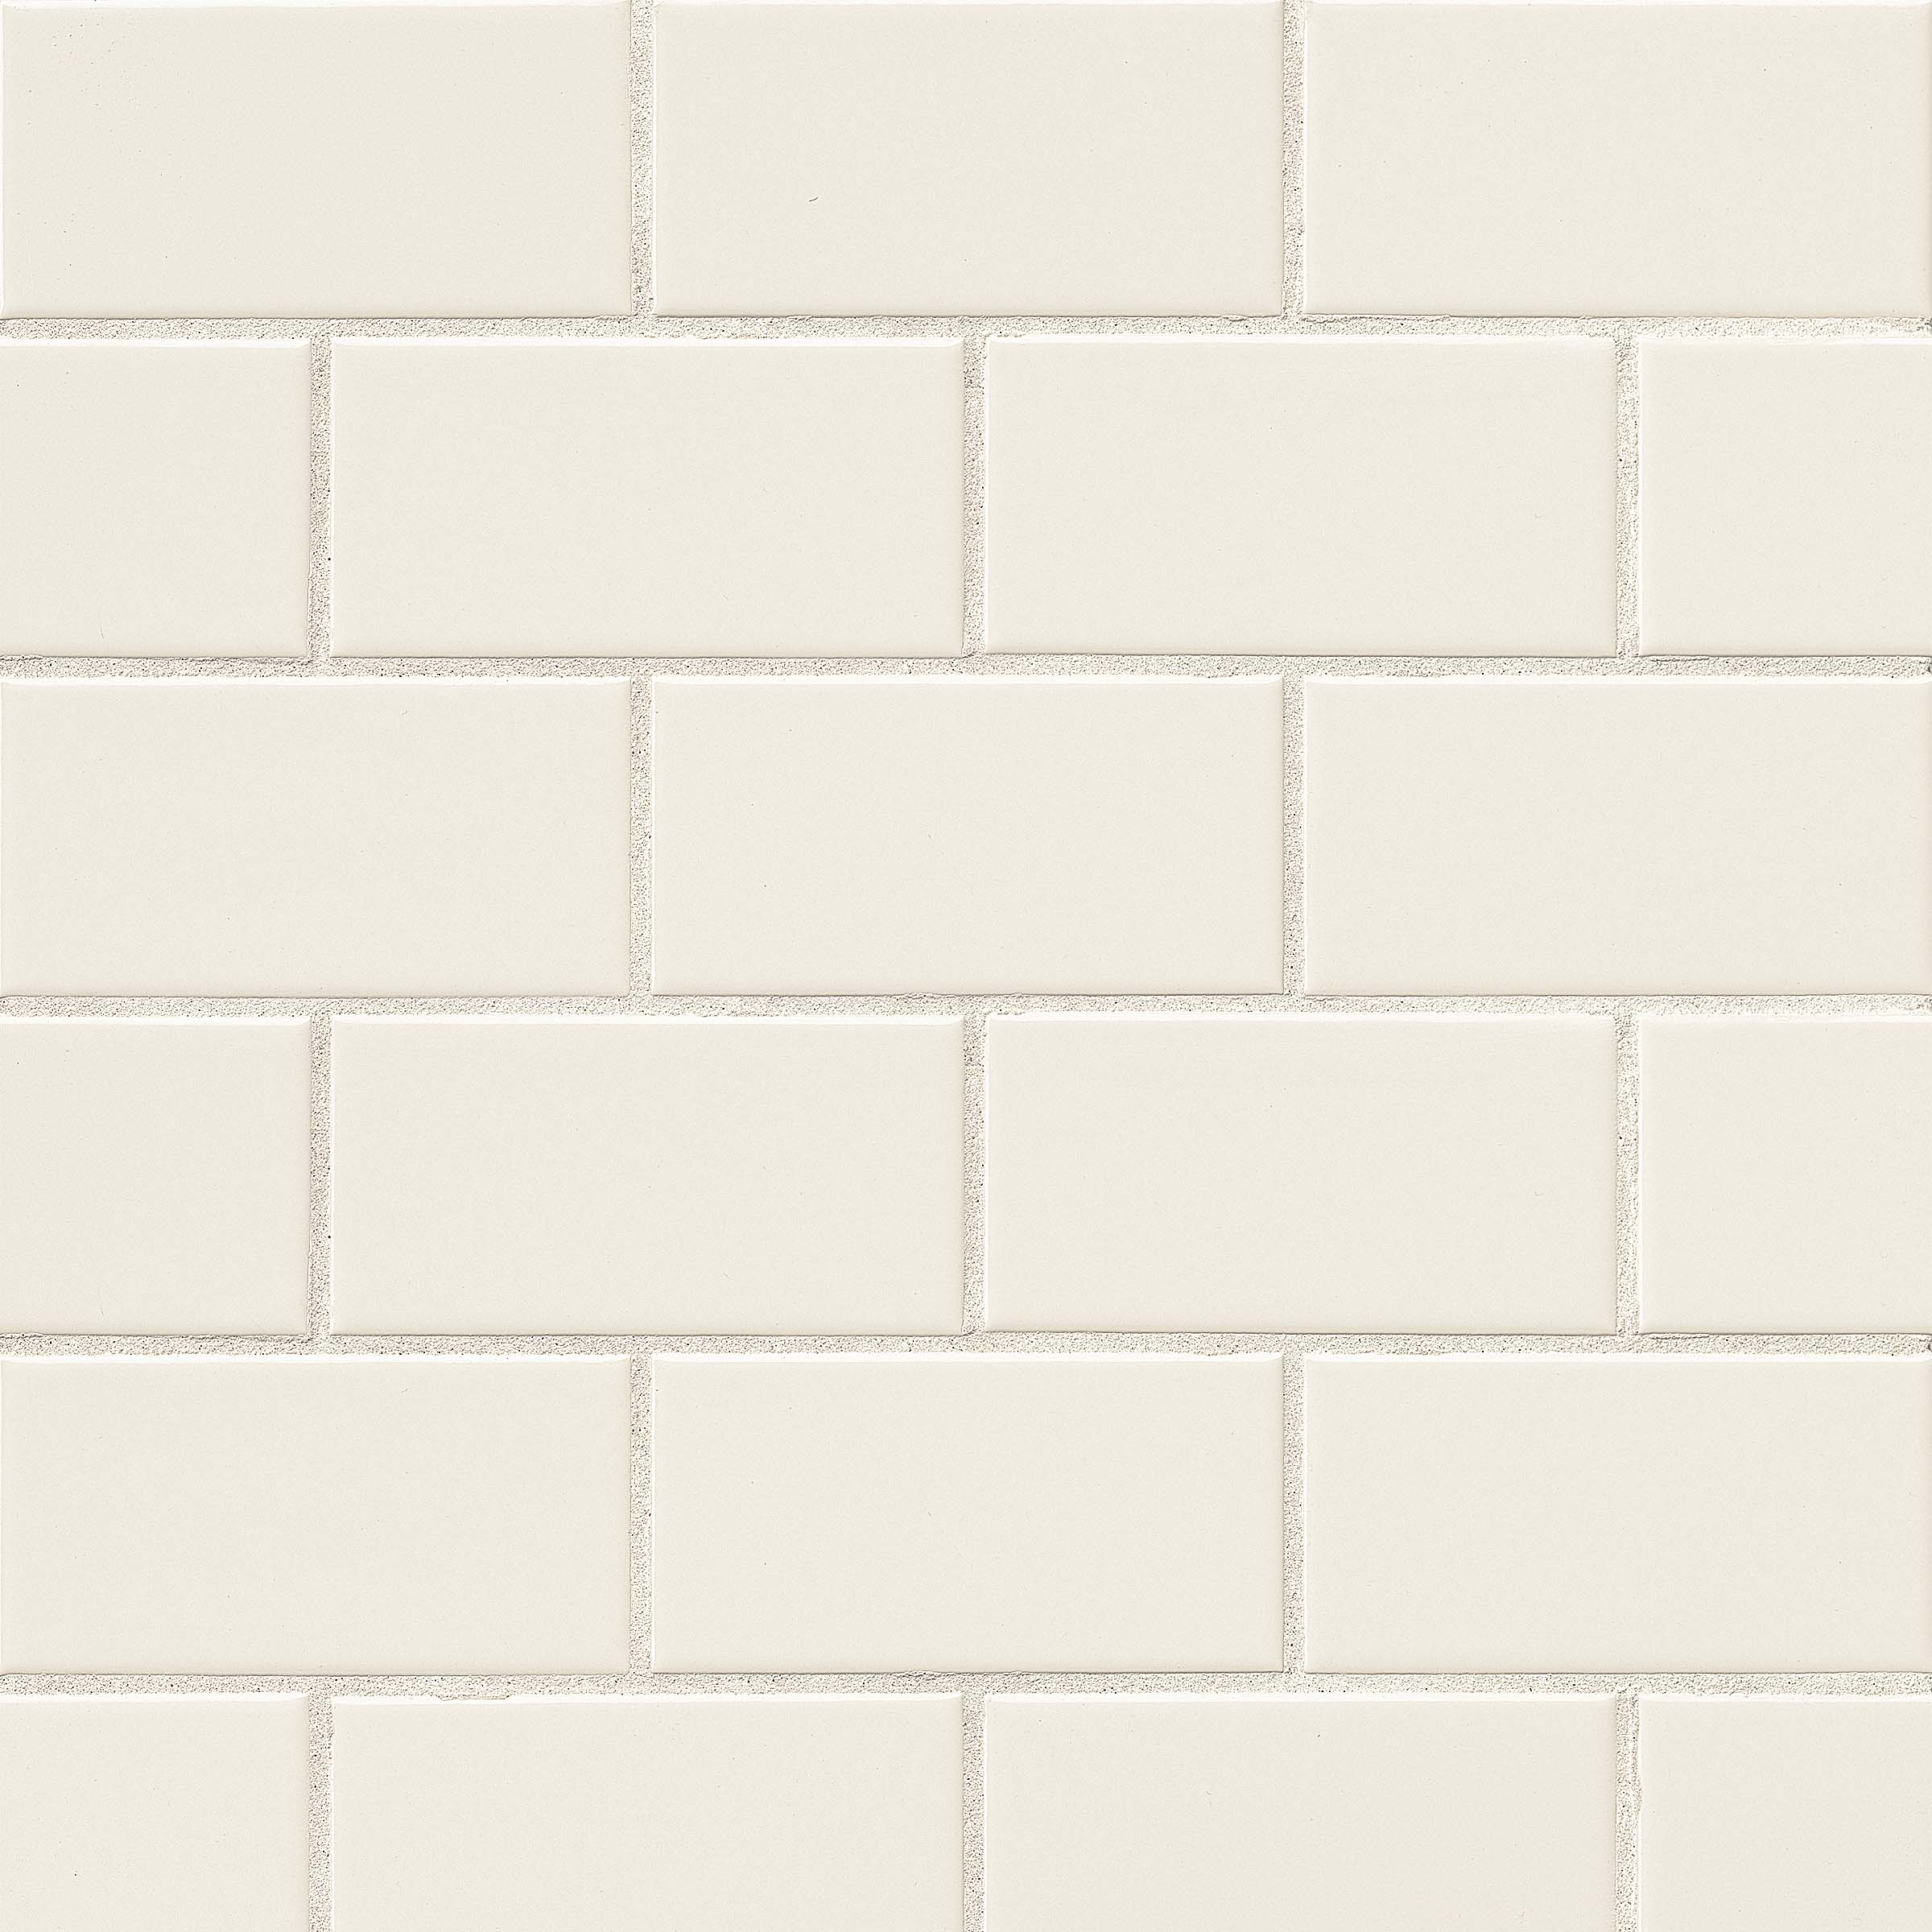 Traditions 4 X 10 X 14 Wall Tile In Tender Gray